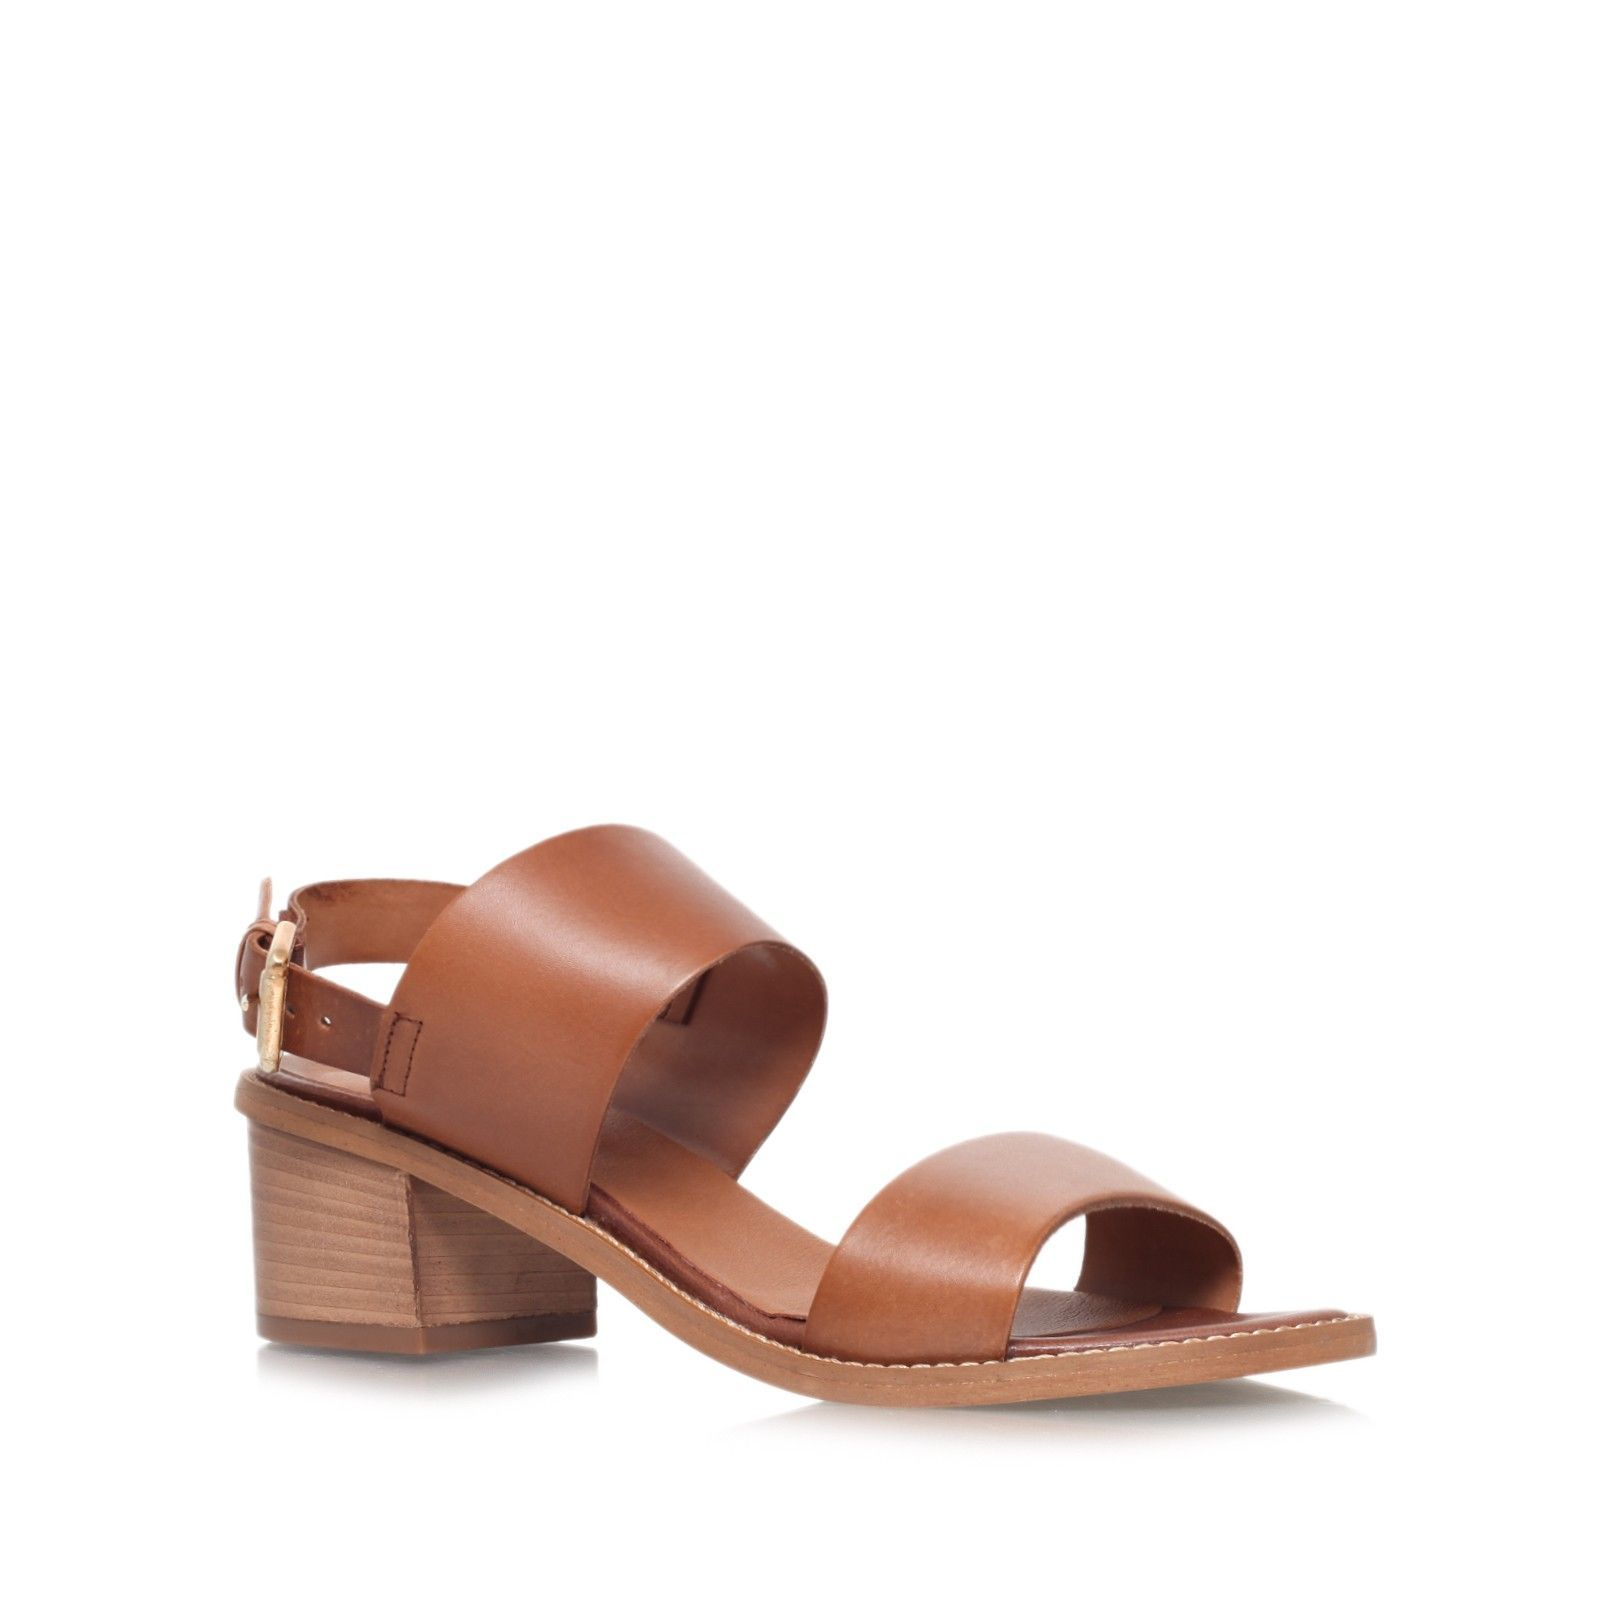 00c1fde53cc kimberly tan mid heel sandals from Carvela Kurt Geiger  SandalsHeels ...